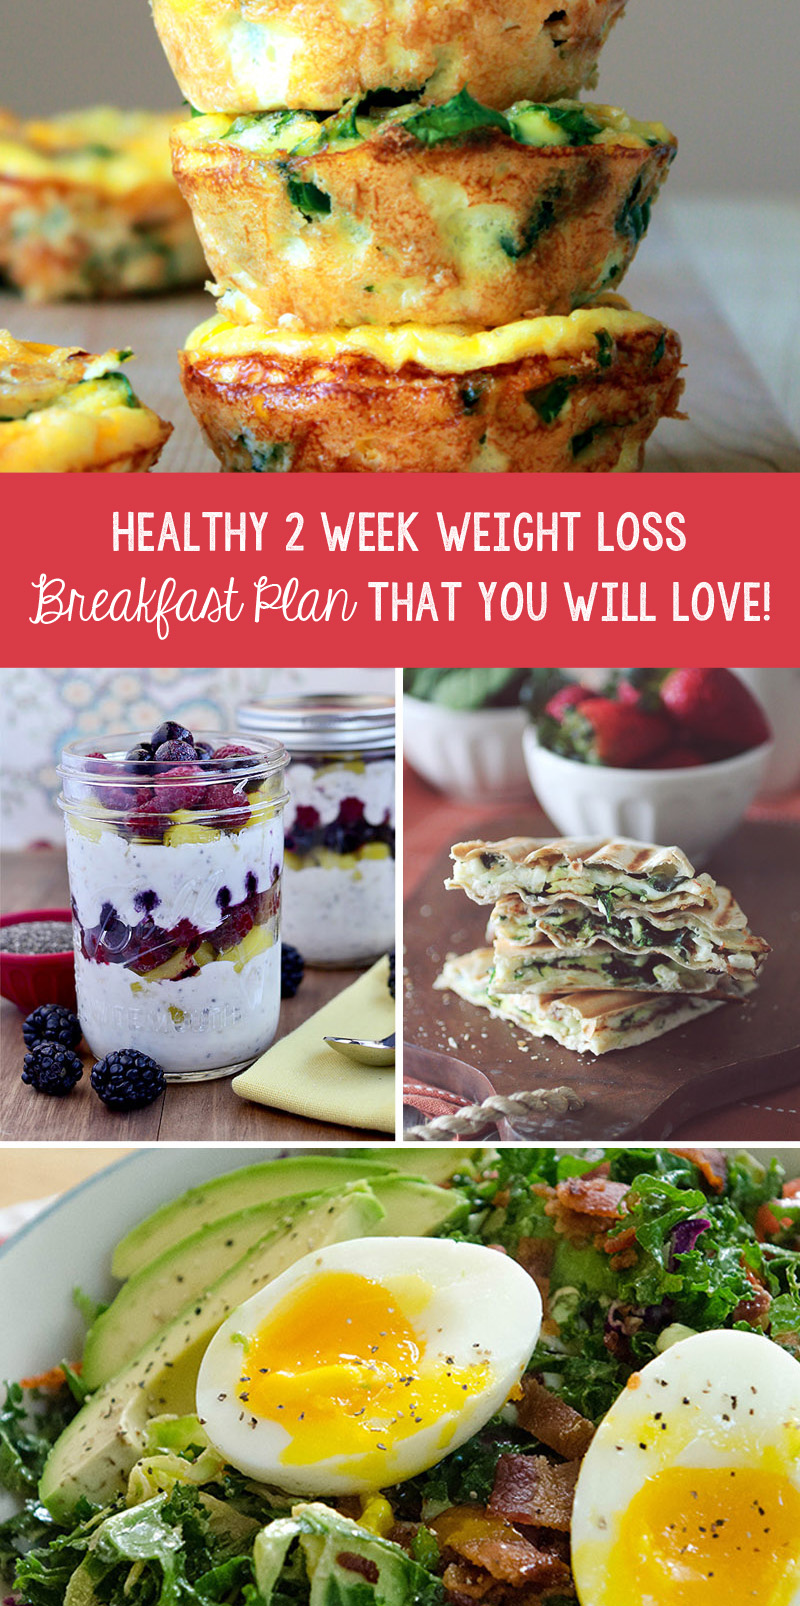 Healthy 2 Week Weight Loss Breakfast Plan That You Will Love!